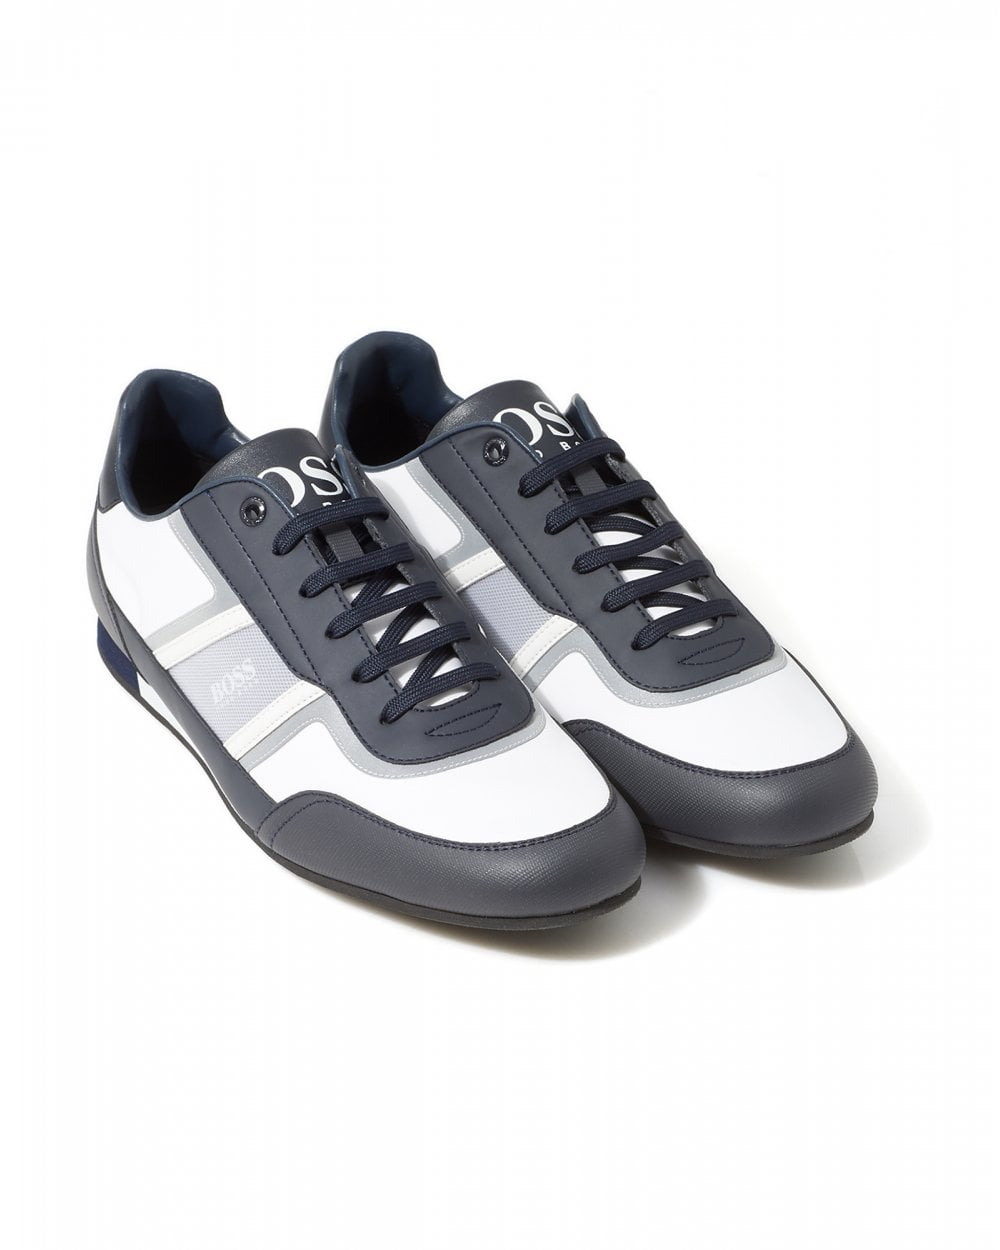 fresh styles purchase cheap classic fit Mens Lighter Low Lightweight Trainers, Navy & White Striped Sneakers